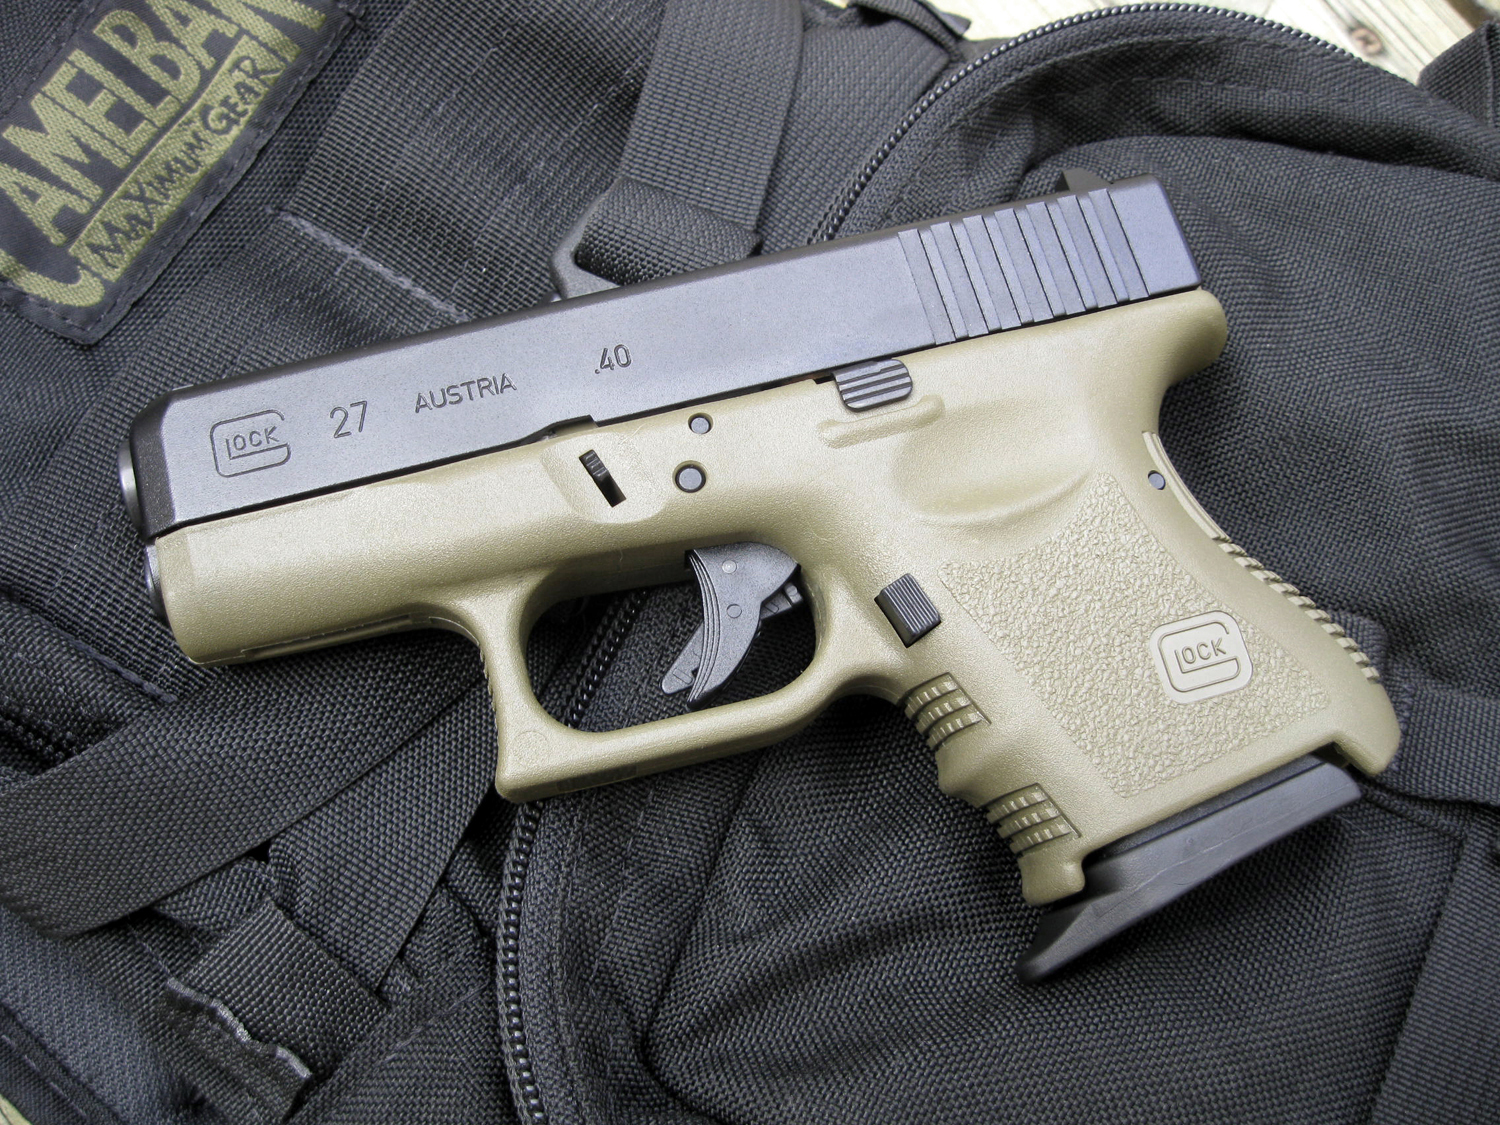 Gap Enterprises Glock Finger Rest Extension Review